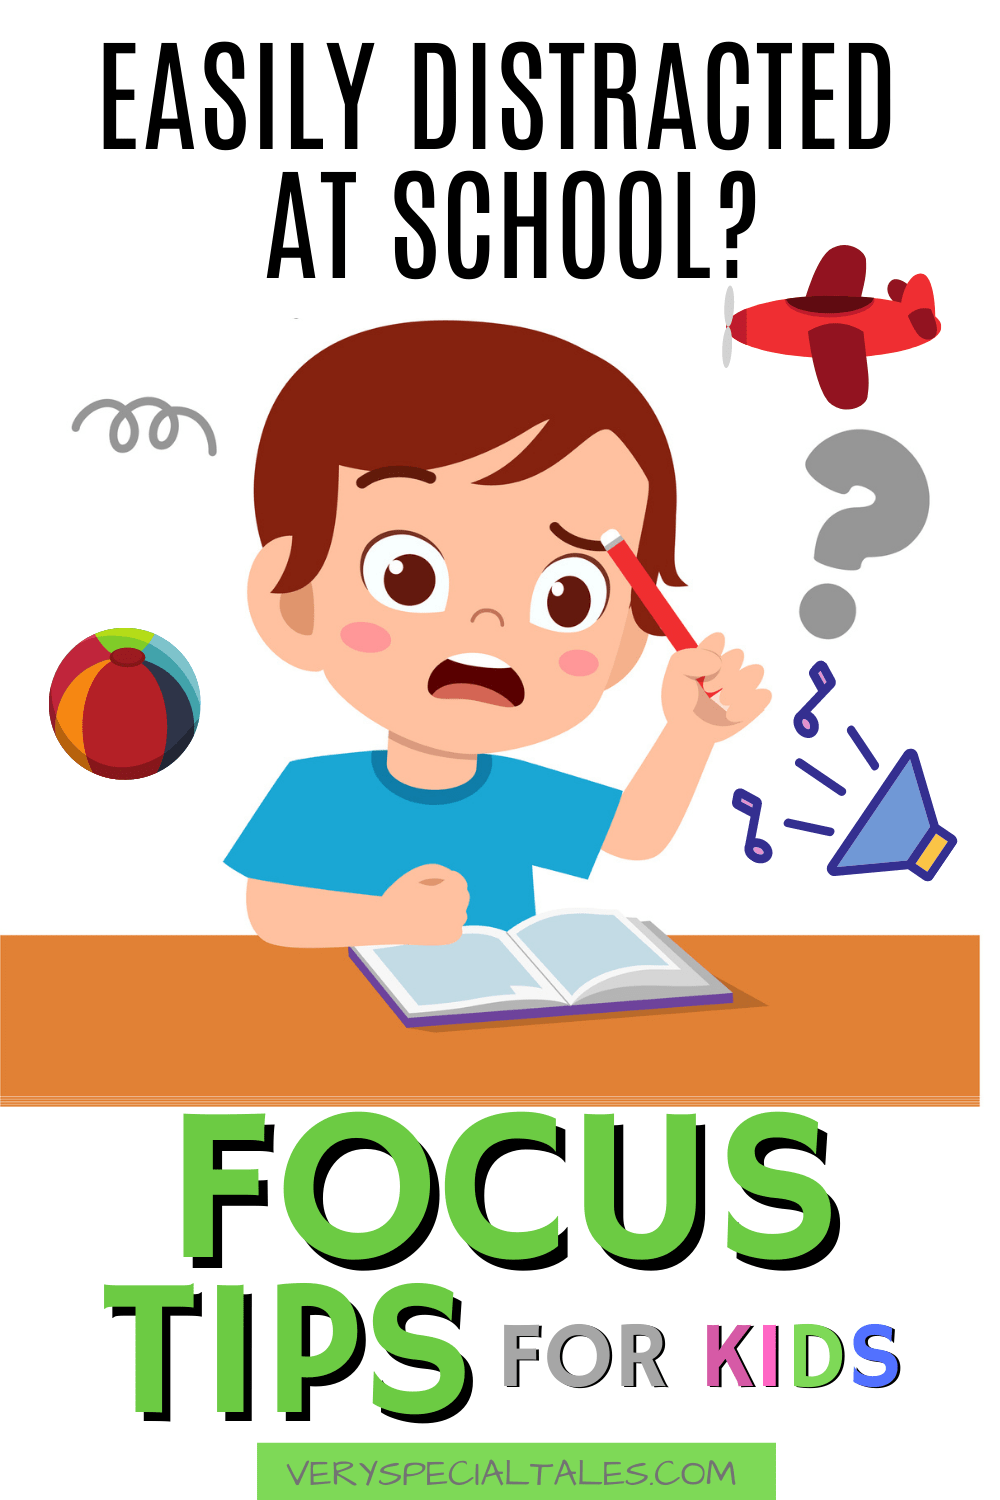 A kid finding it difficult to focus because of many distractions